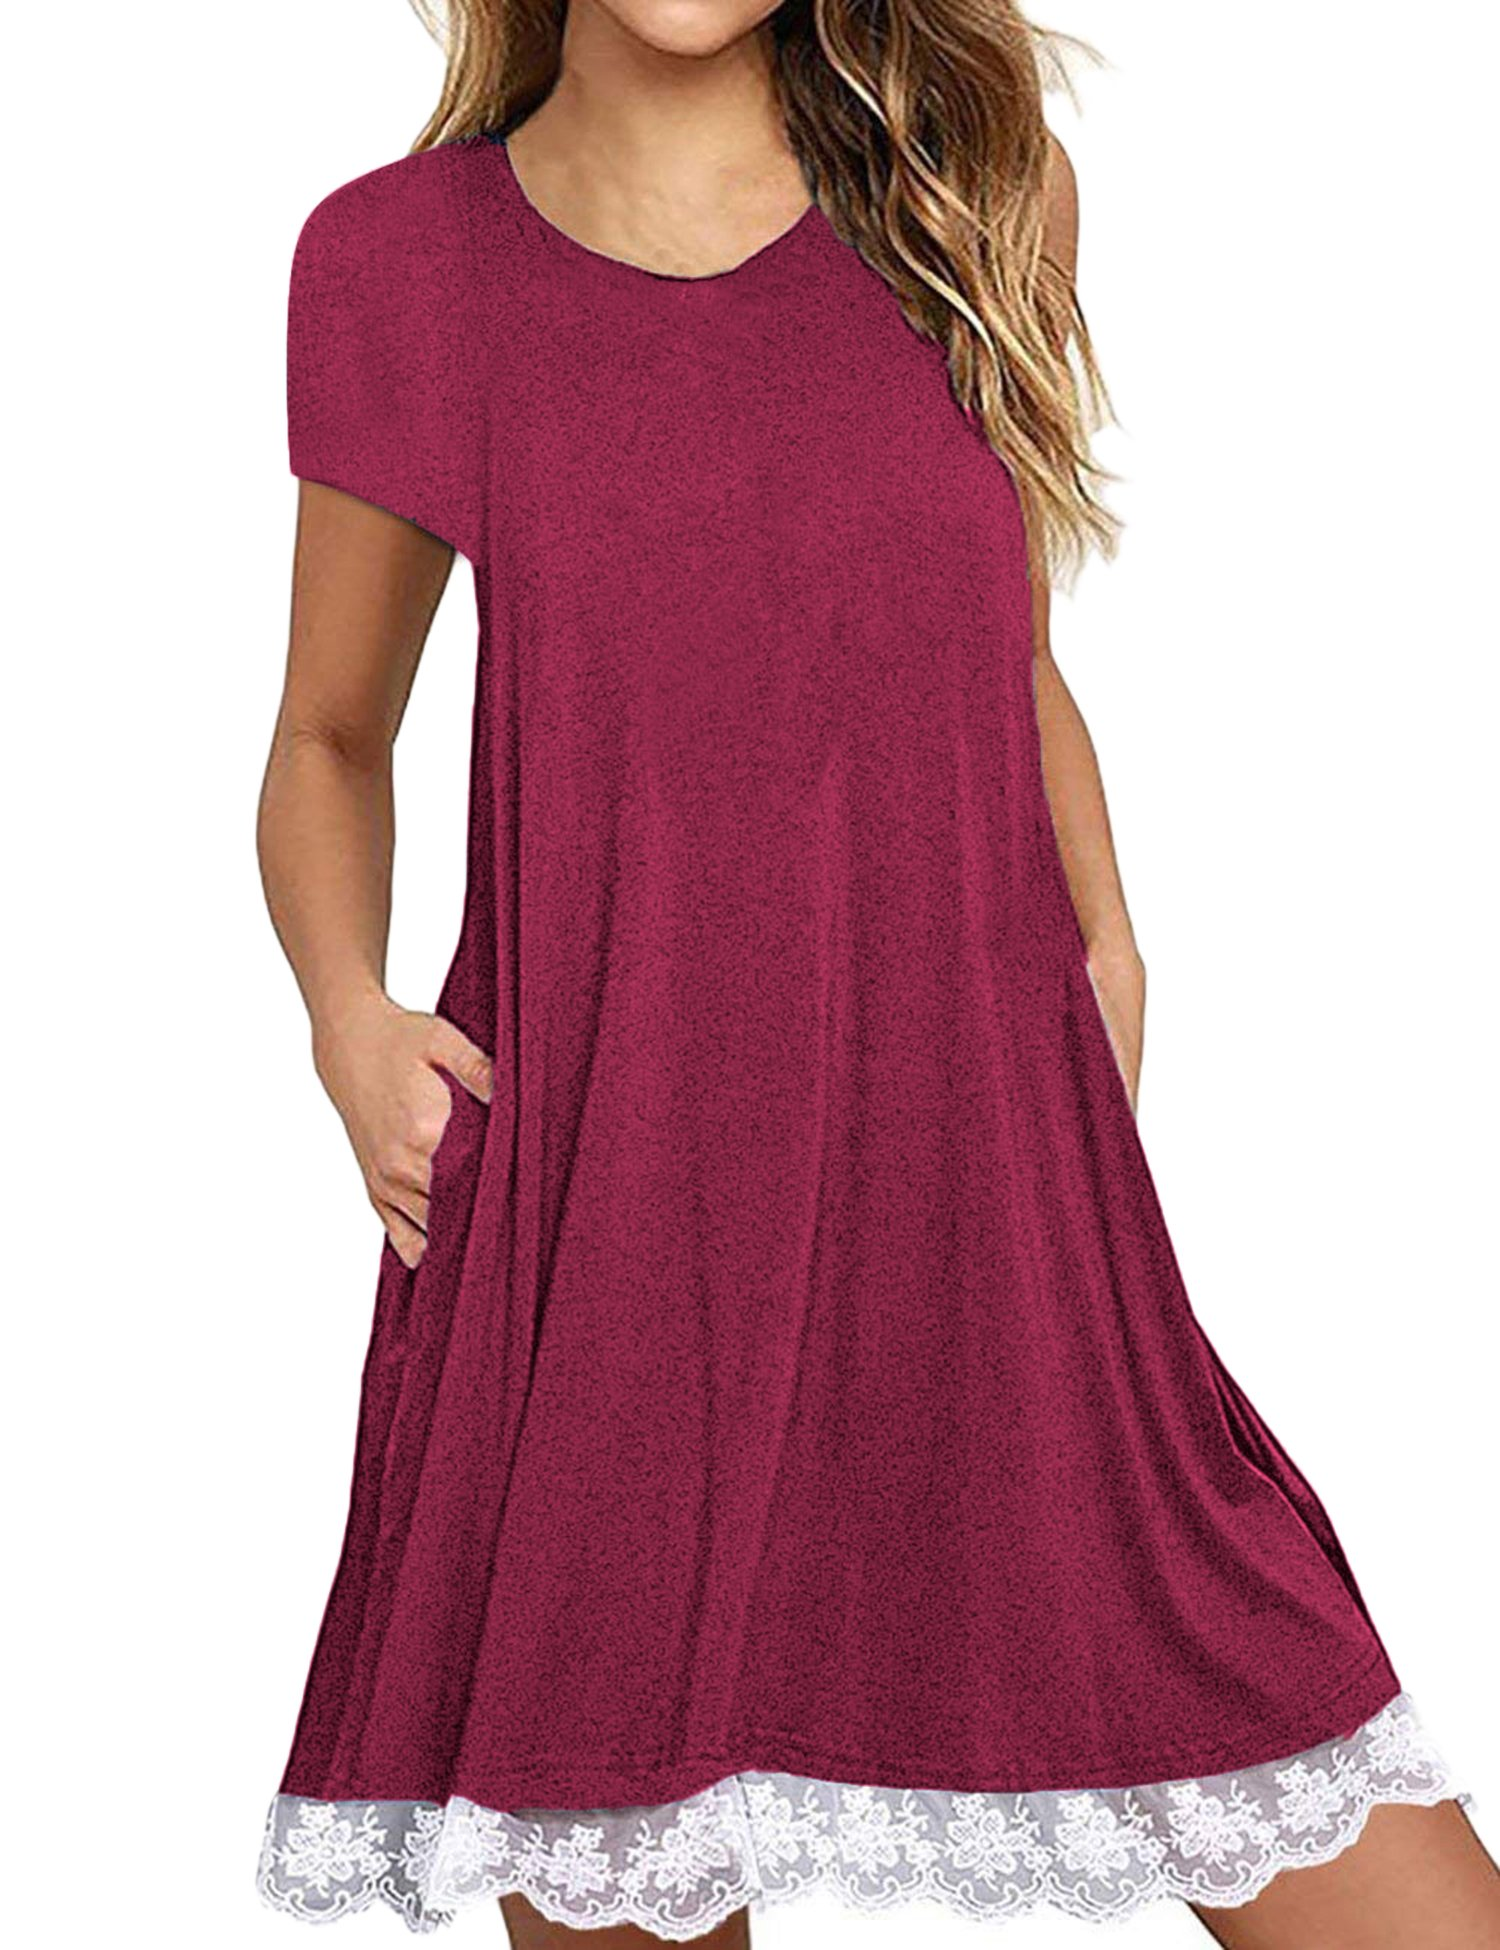 FISOUL Women's Casual Short Sleeve Lace Tunic Dress Summer T-Shirt Dress with Pockets Red L